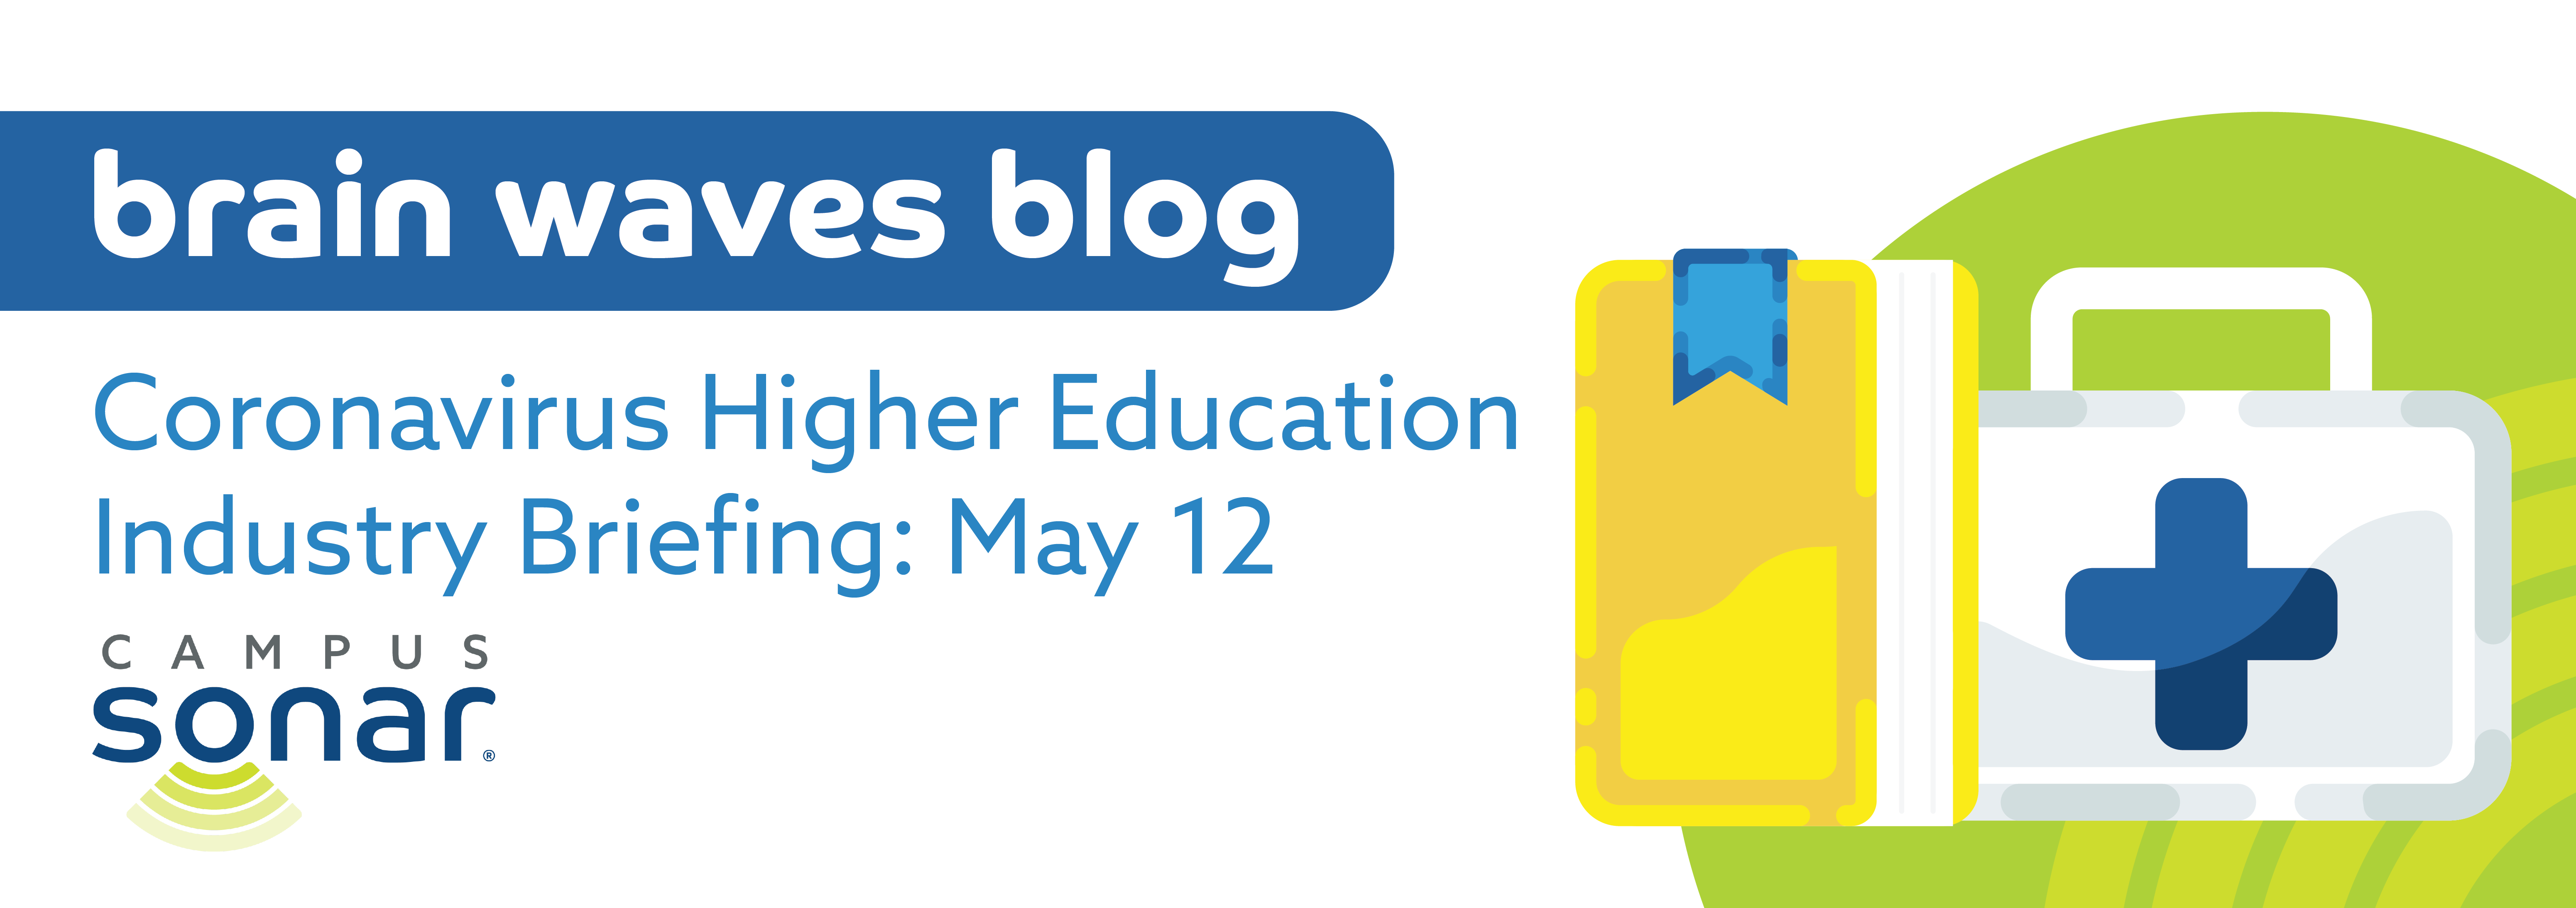 Blog post image for Coronavirus Higher Education Industry Briefing: May 12